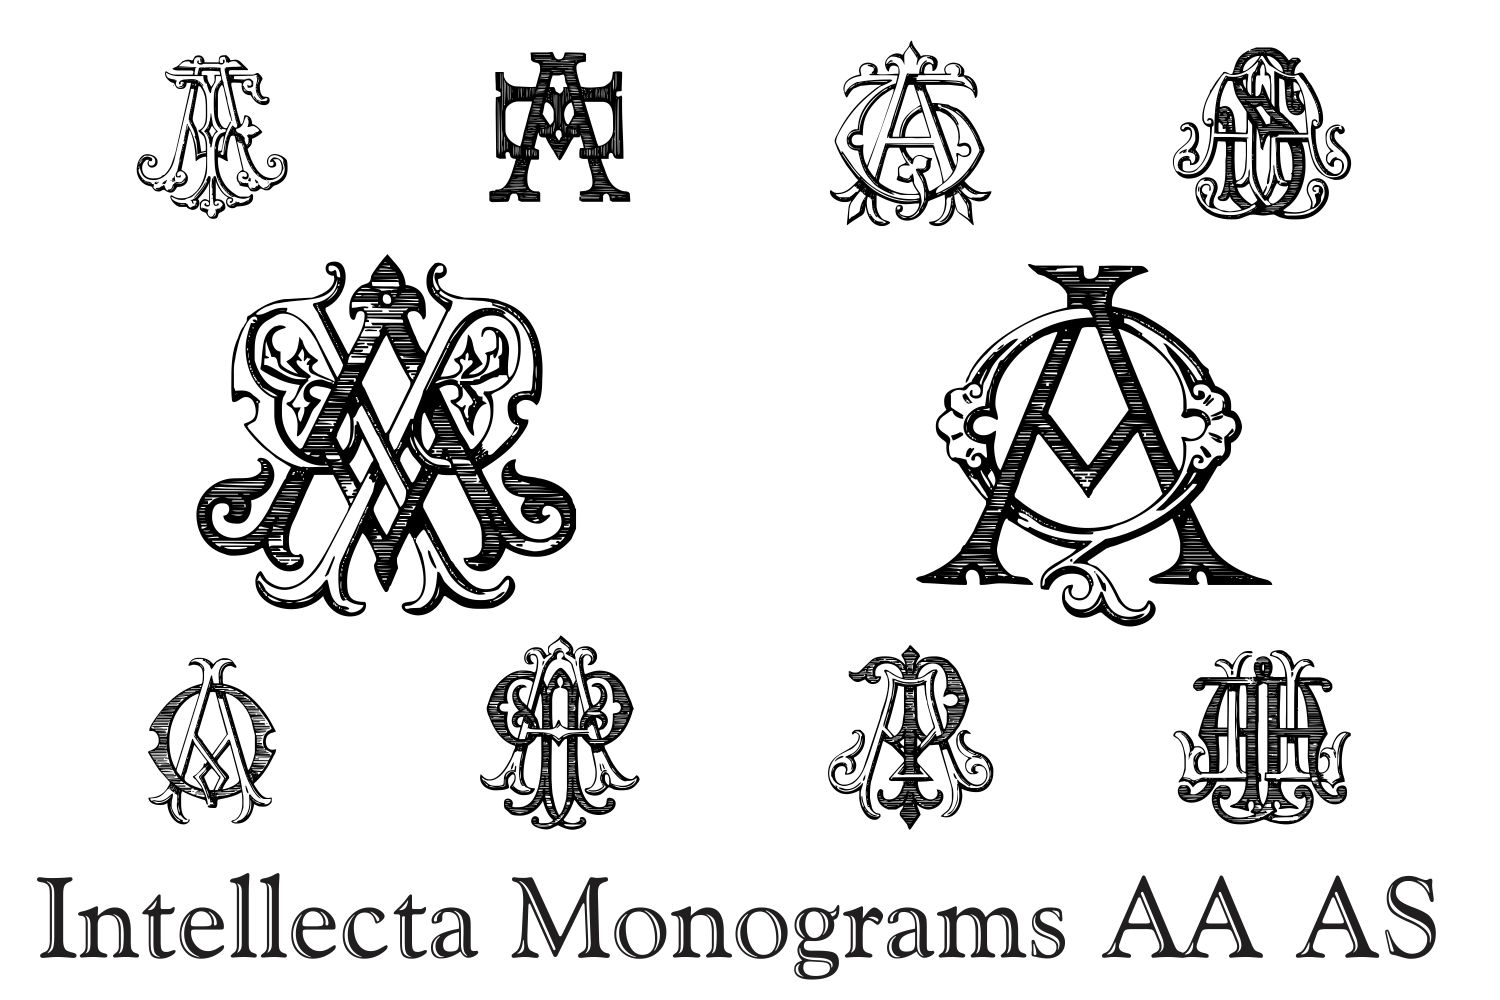 IntellectaMonograms AAAS example image 4